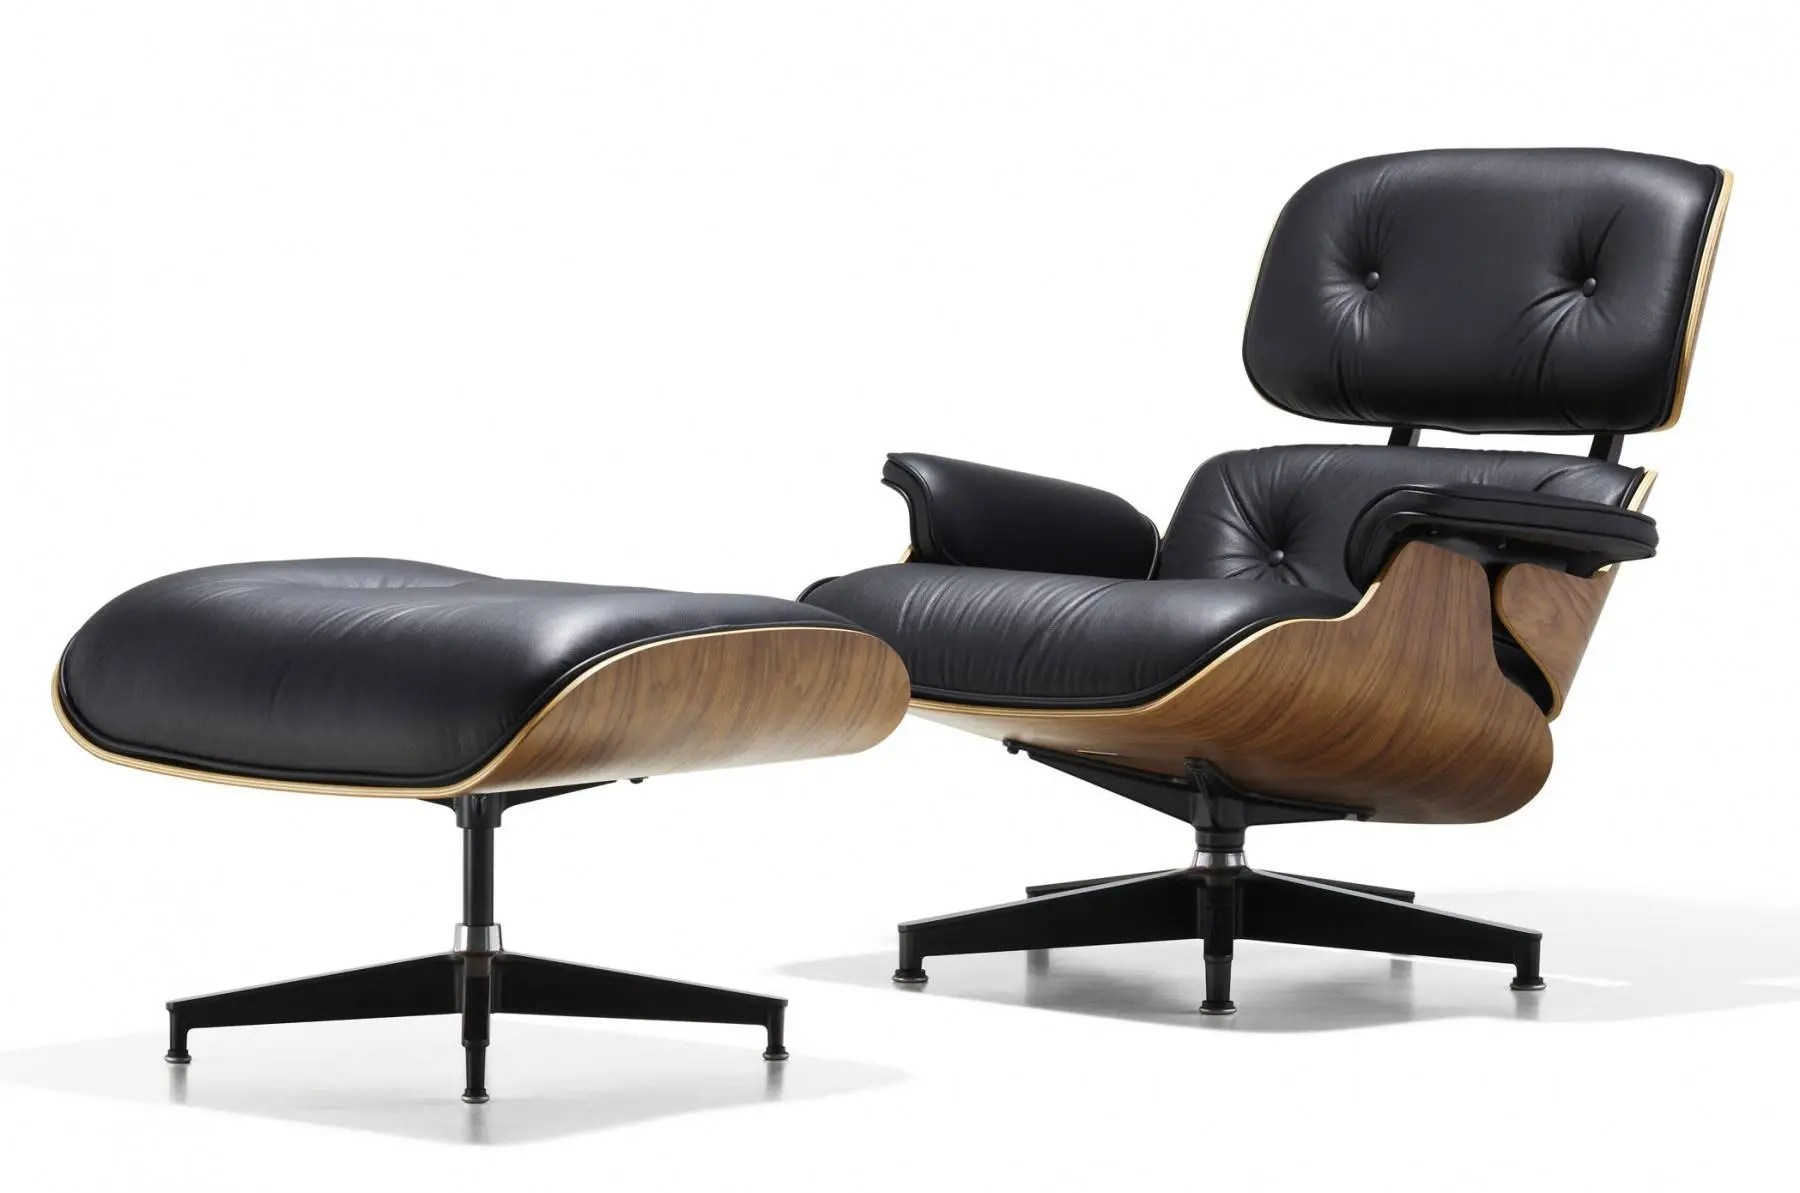 Eames Chairs Qld Herman Miller Eames Lounge Chair And Ottoman Gr Shop Canada